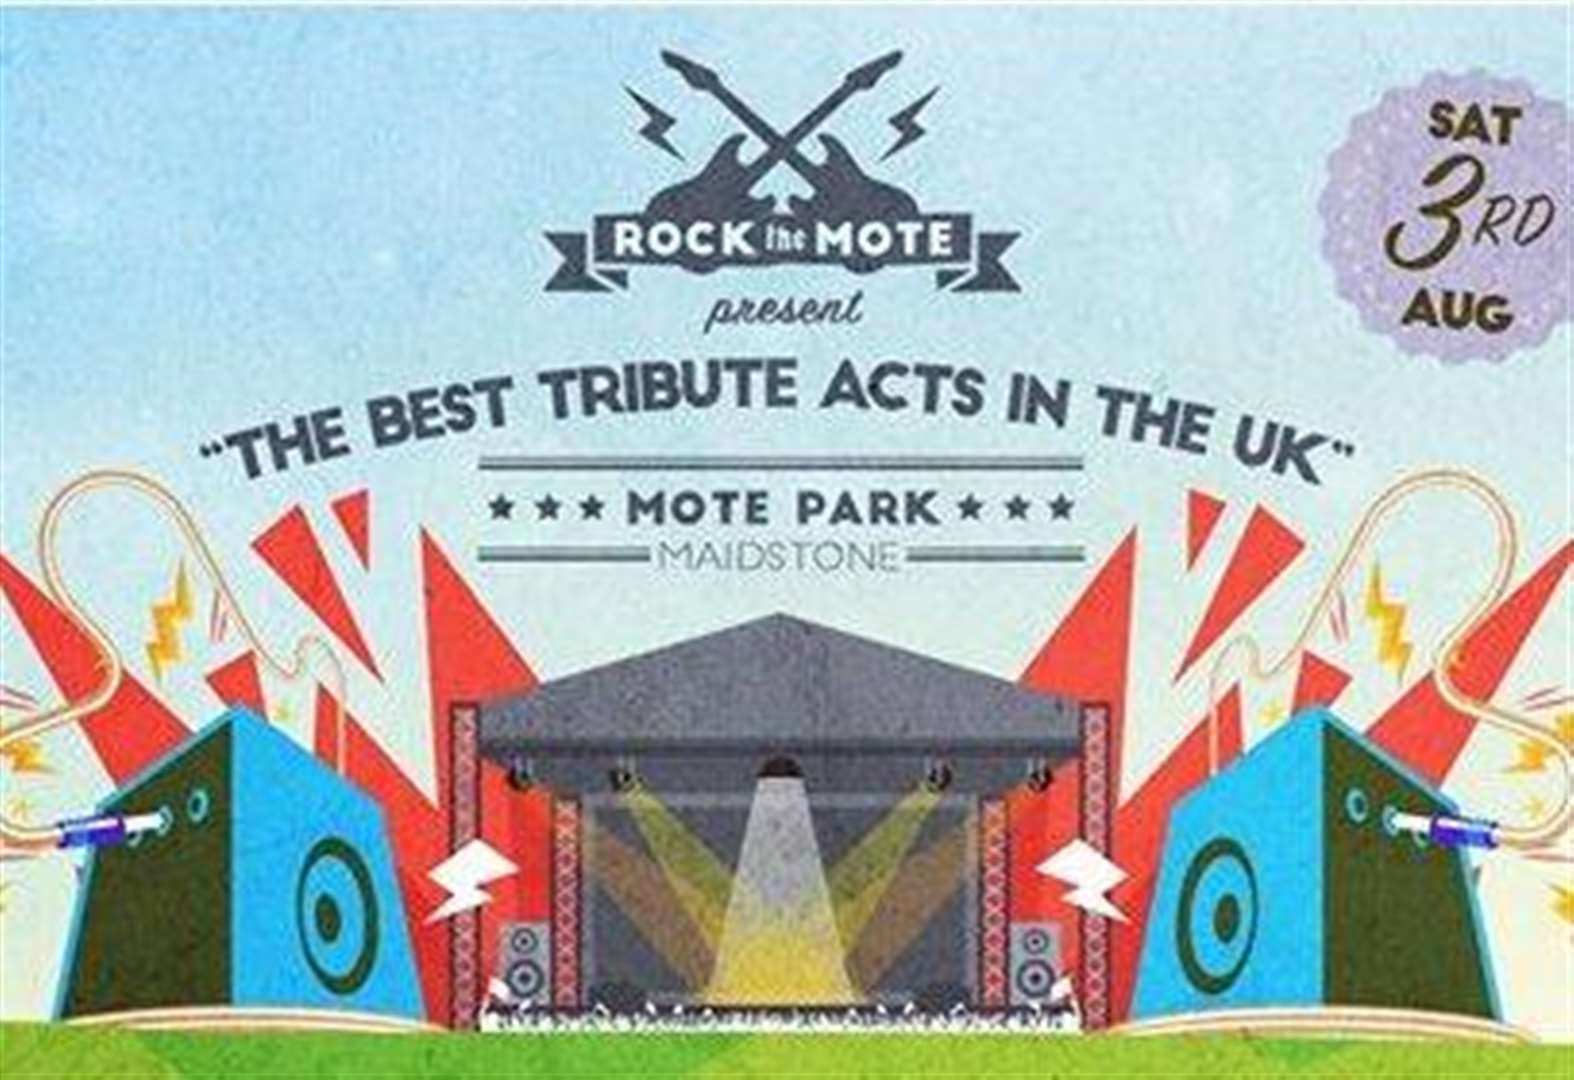 New festival brings top tribute acts to town